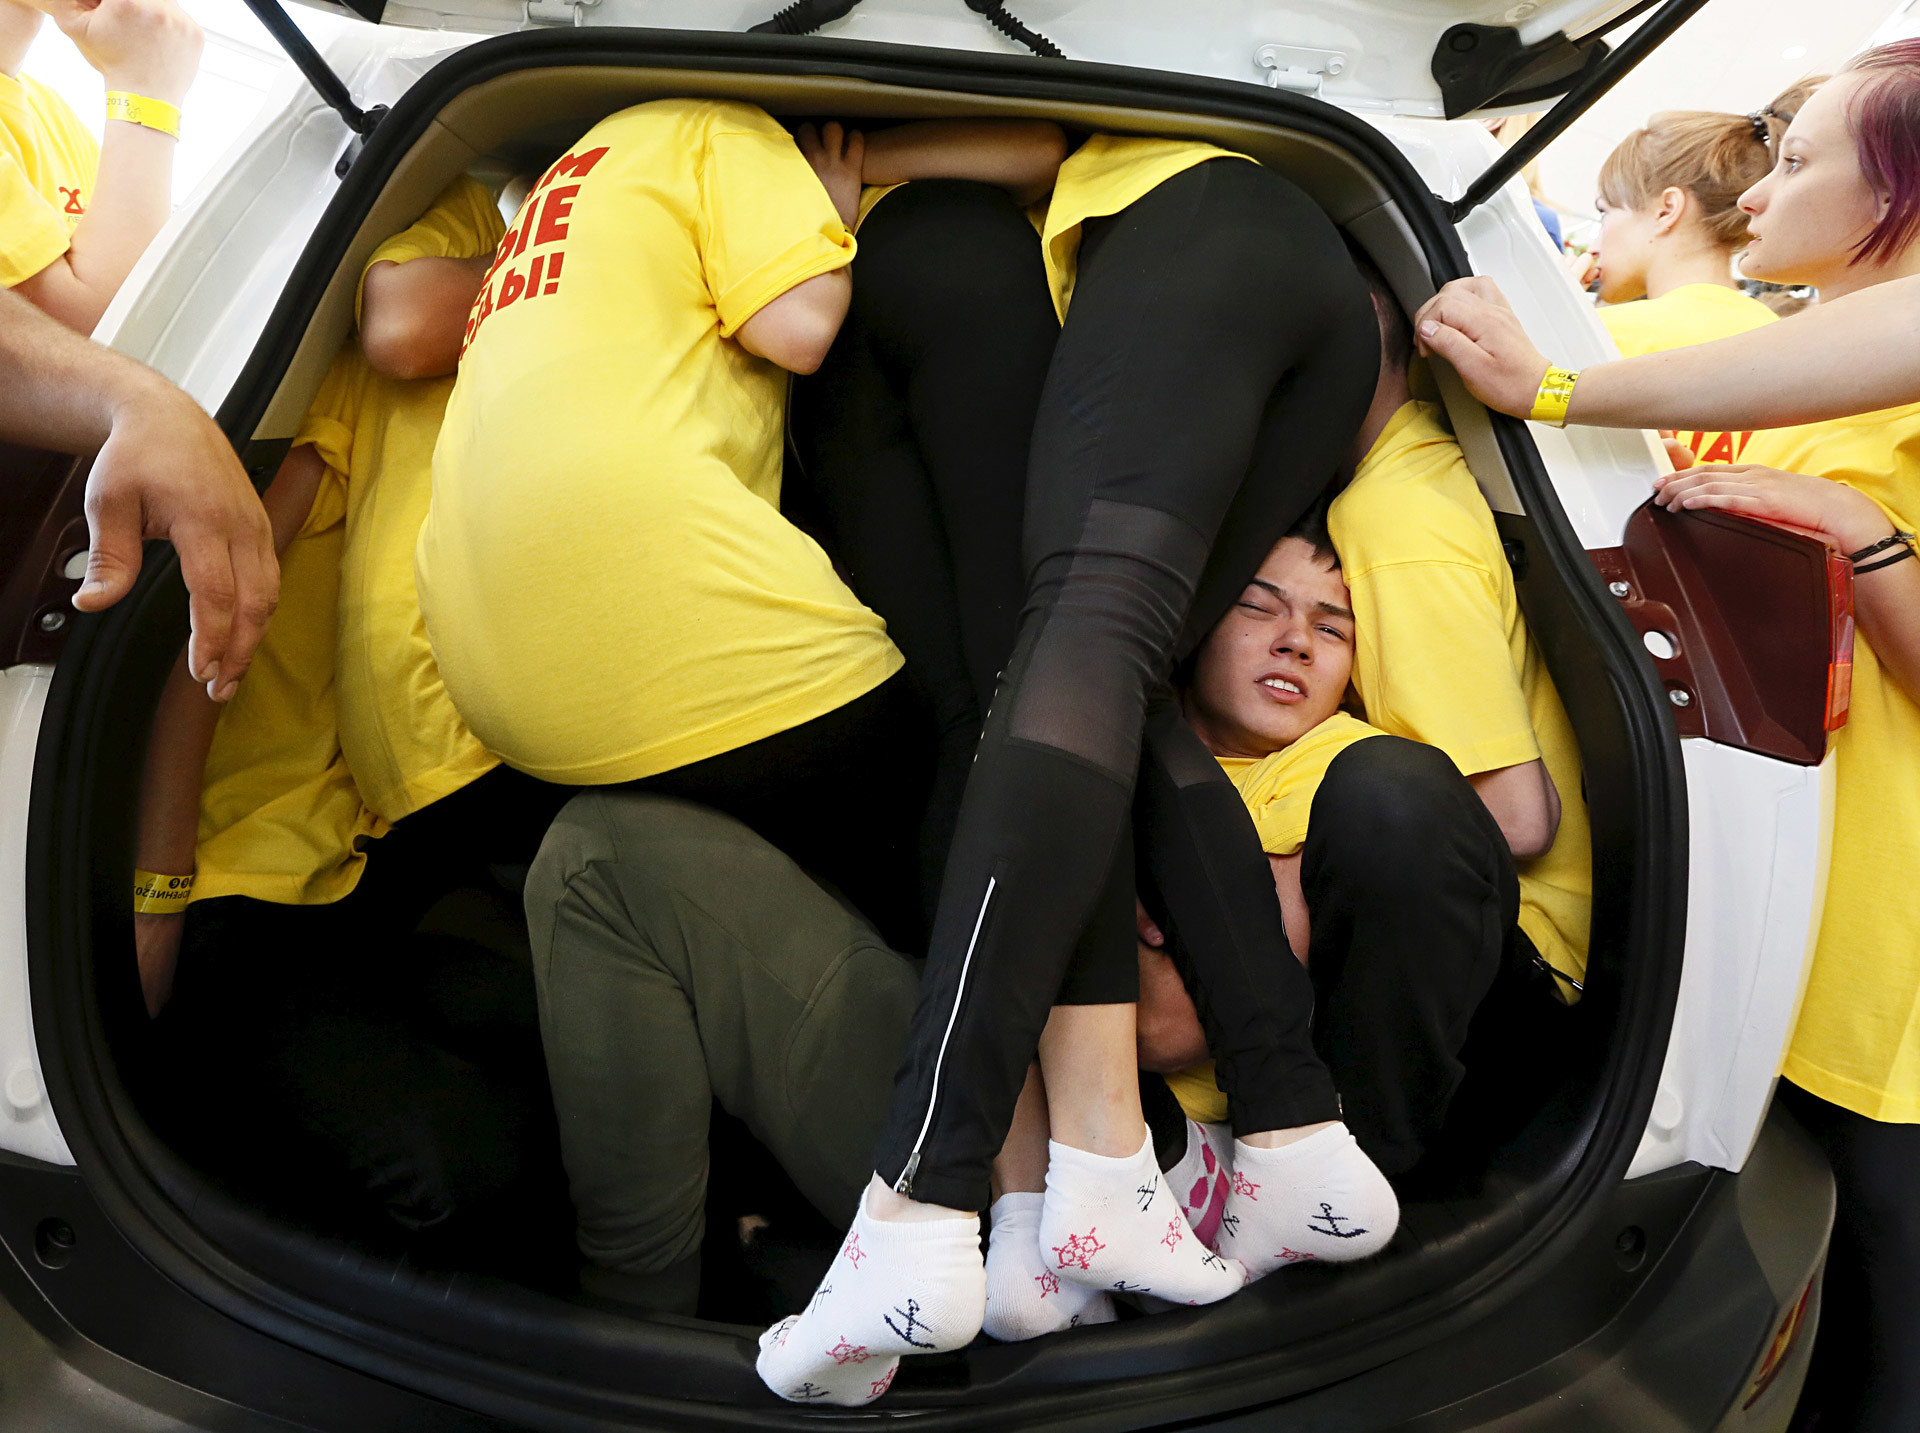 Students from the Siberian Federal University team squeeze into a car during an attempt for a Guinness Book of World Records. Judging by their faces, they're just plain happy!